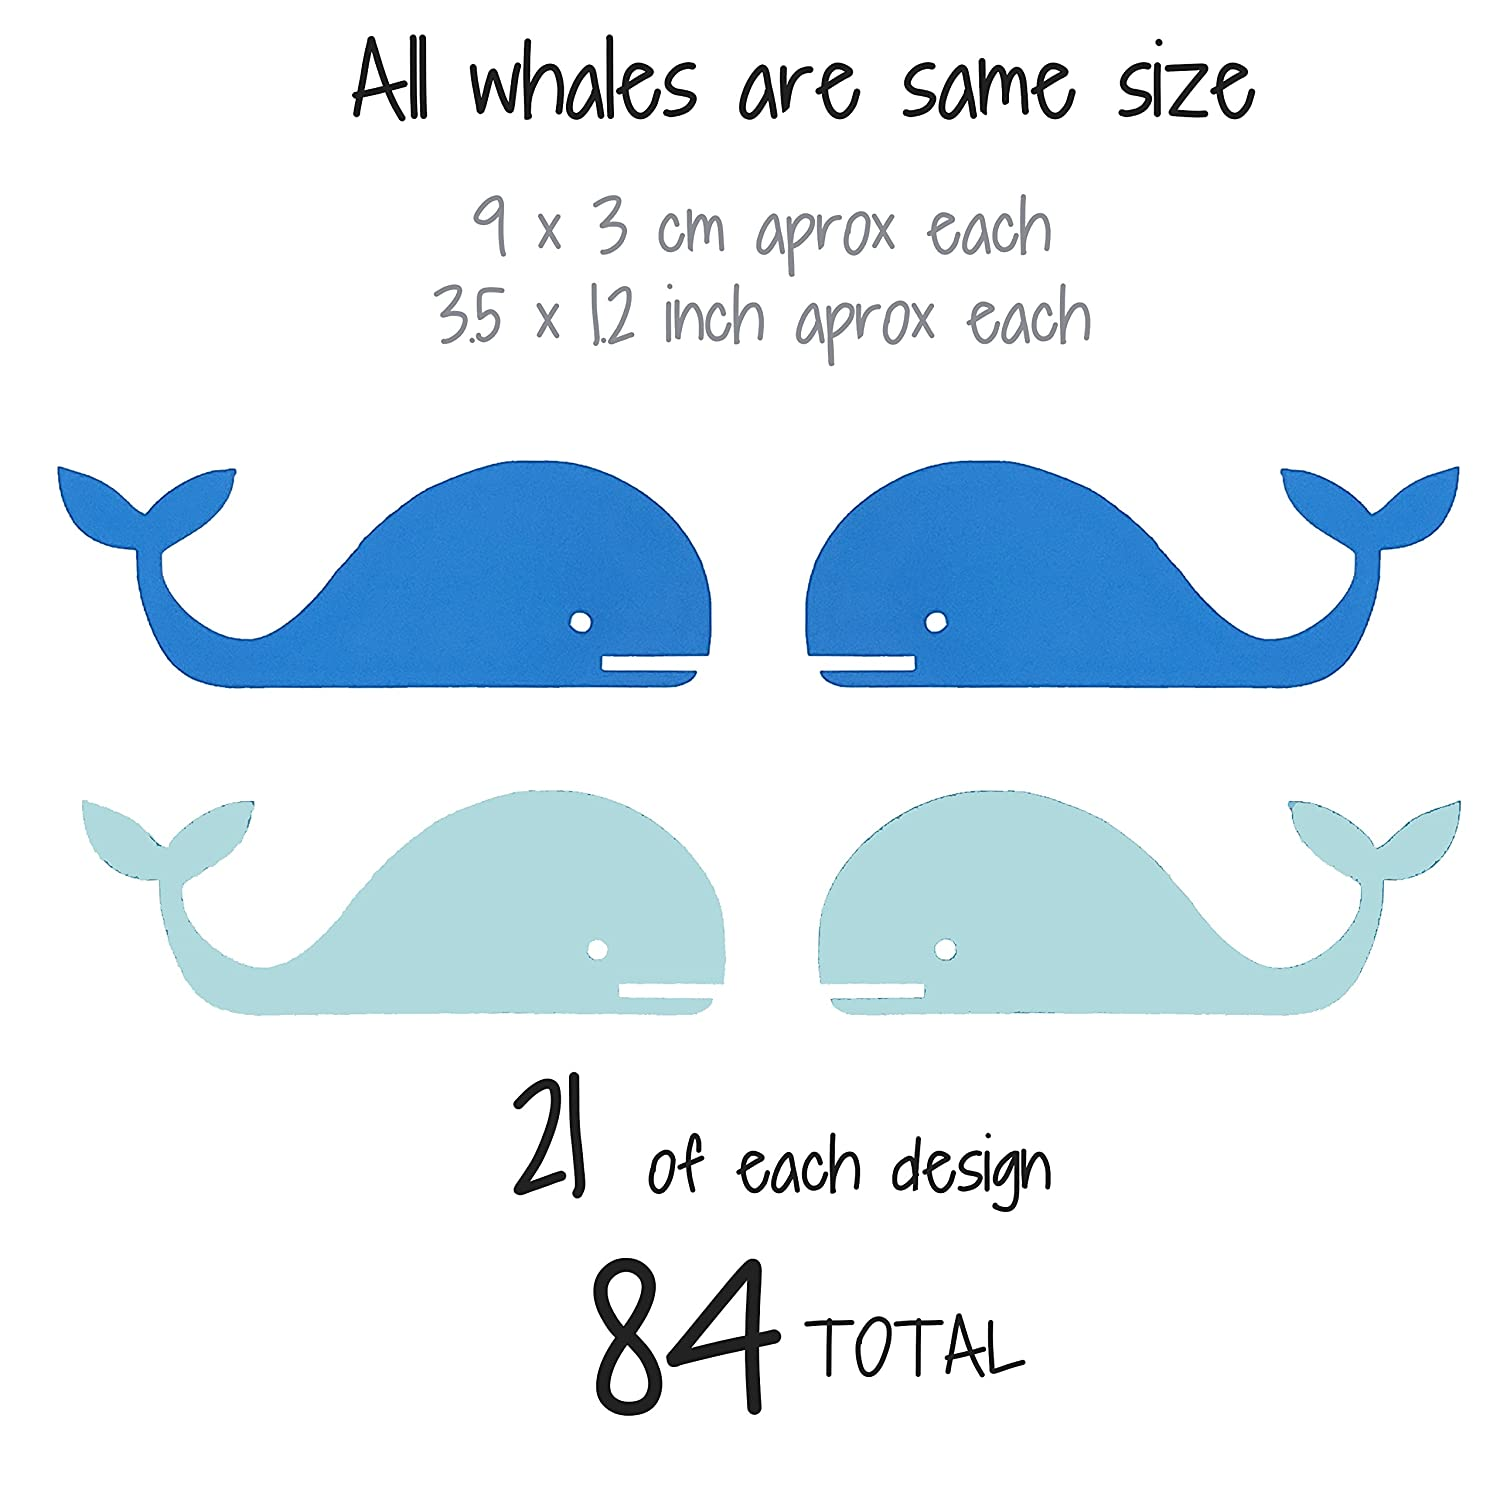 Baby Nordic ballena Bedroom Decoration. Light Blue Blue The Boho Design WHALES WALL VINYL DECAL DECOR NURSERY Adhesive whale stickers Kids